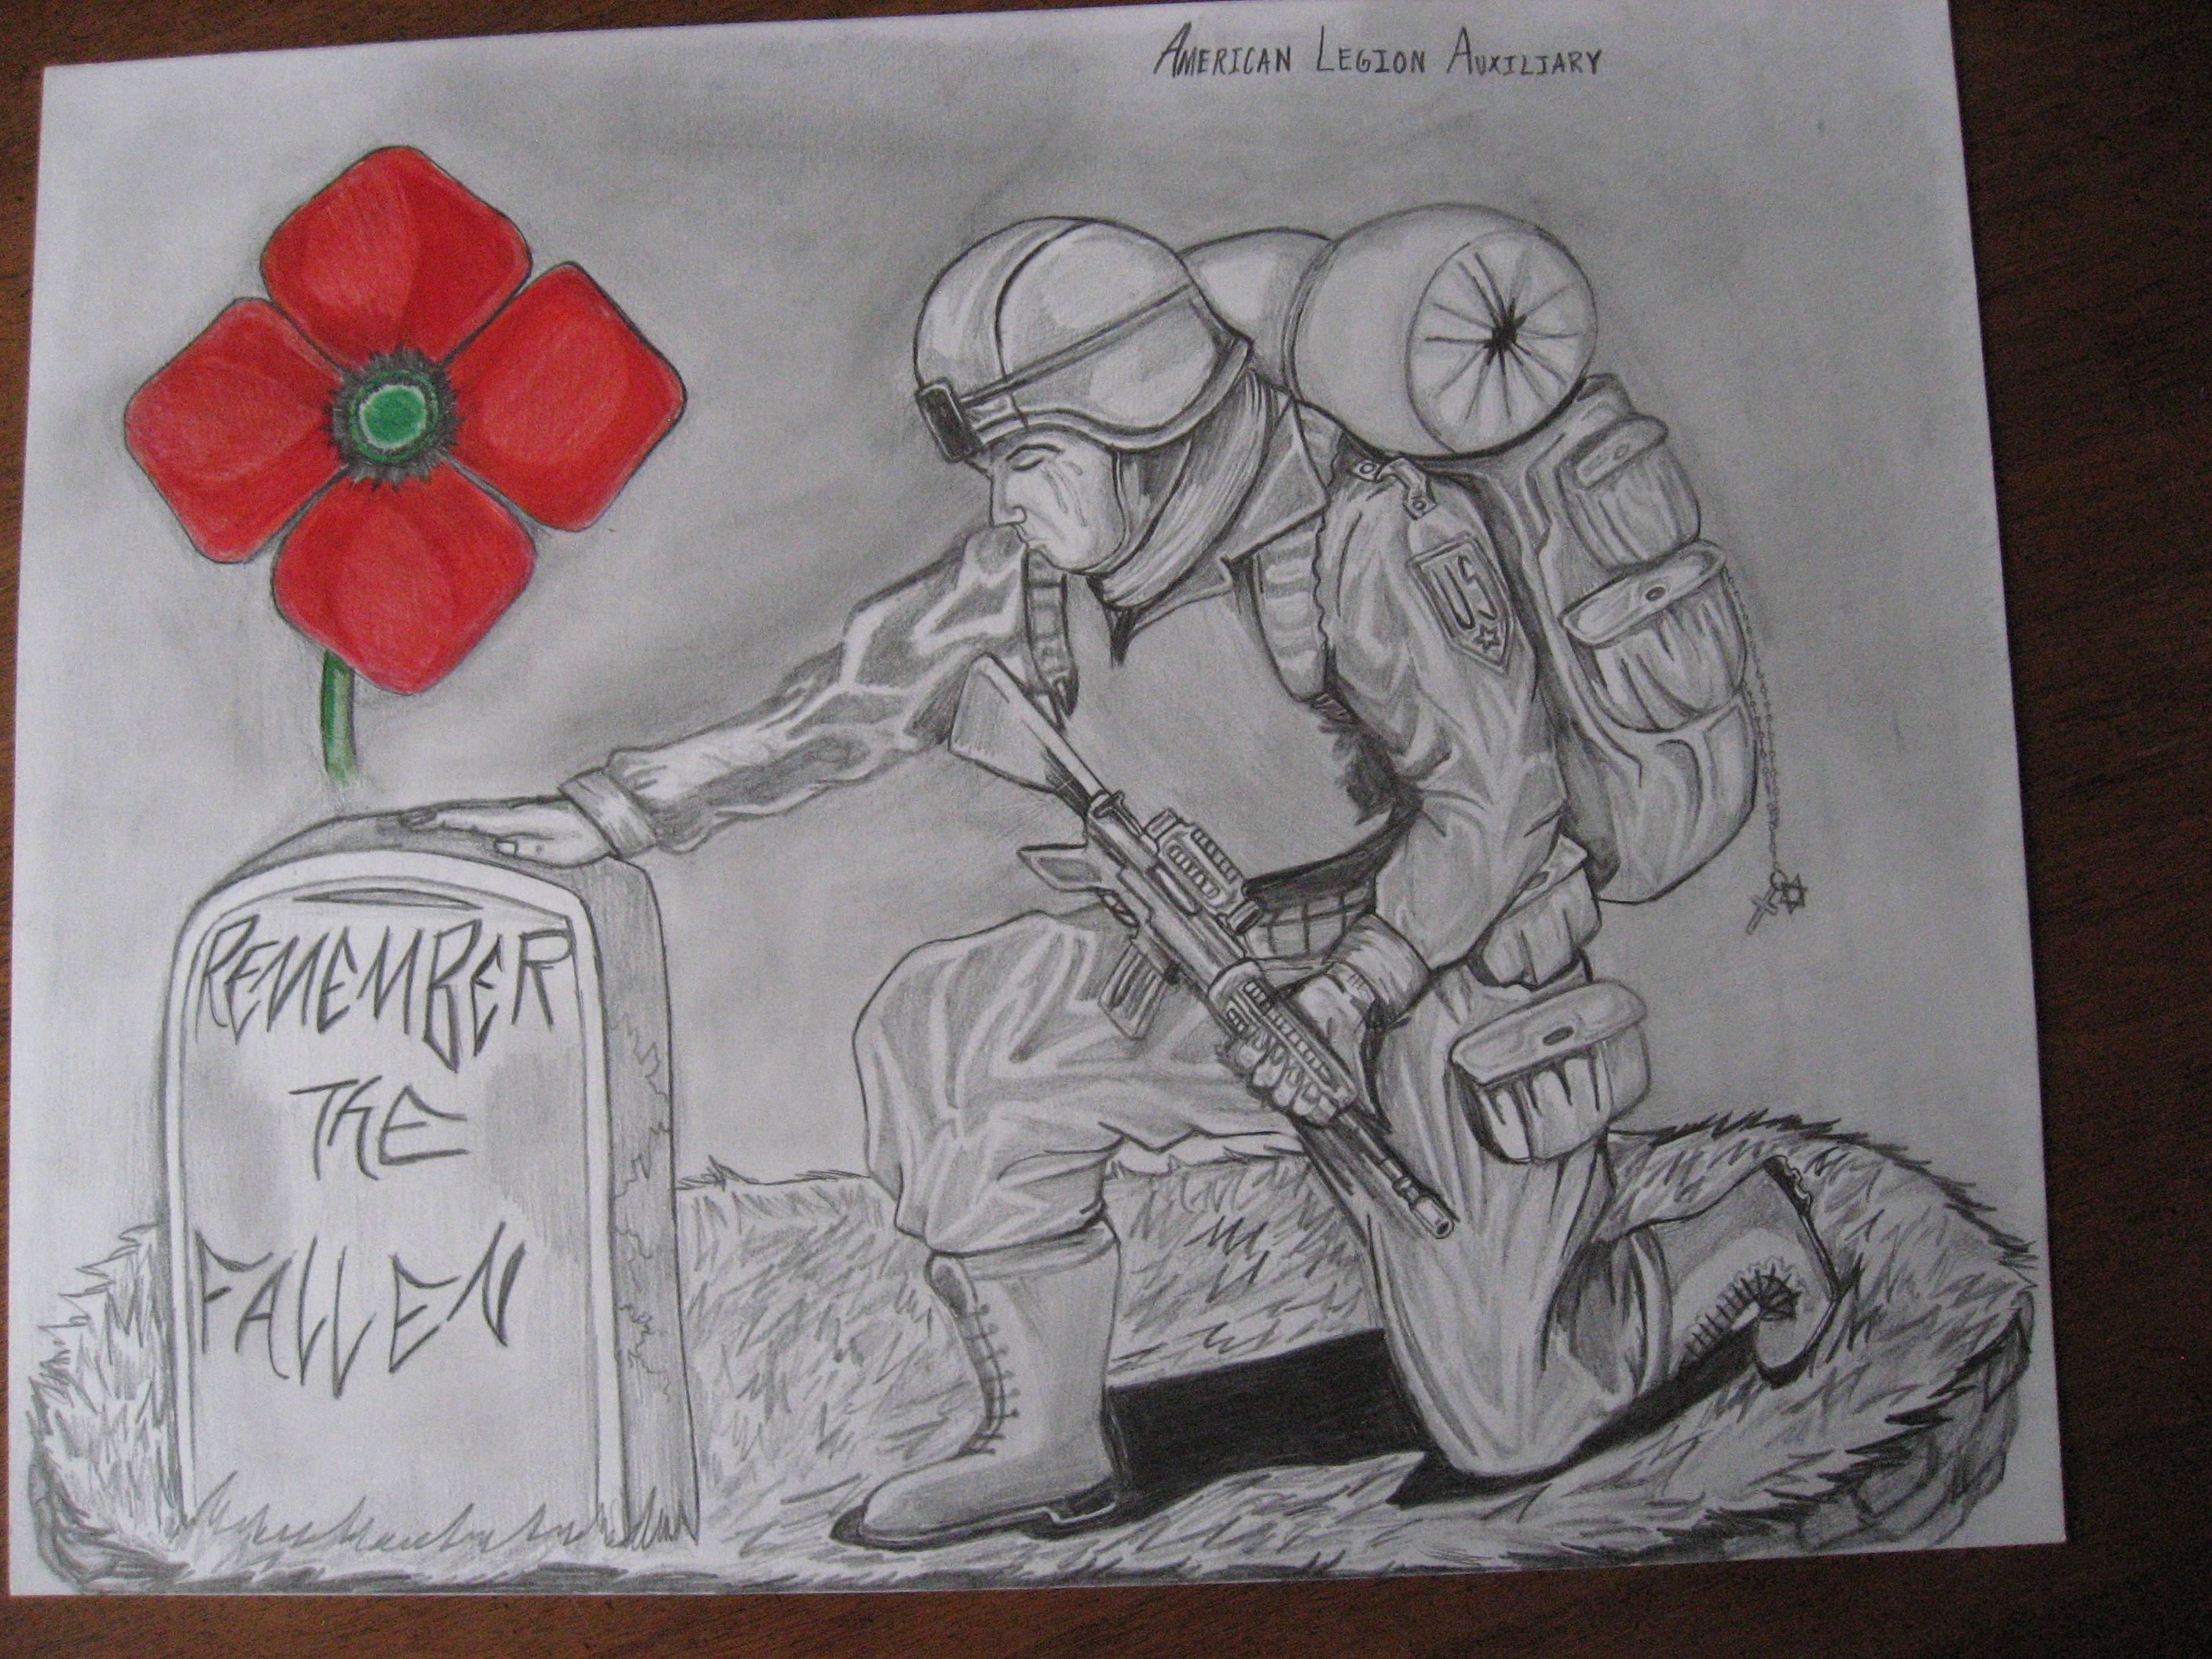 Drawn poppy american legion On images about unit 2012/2013